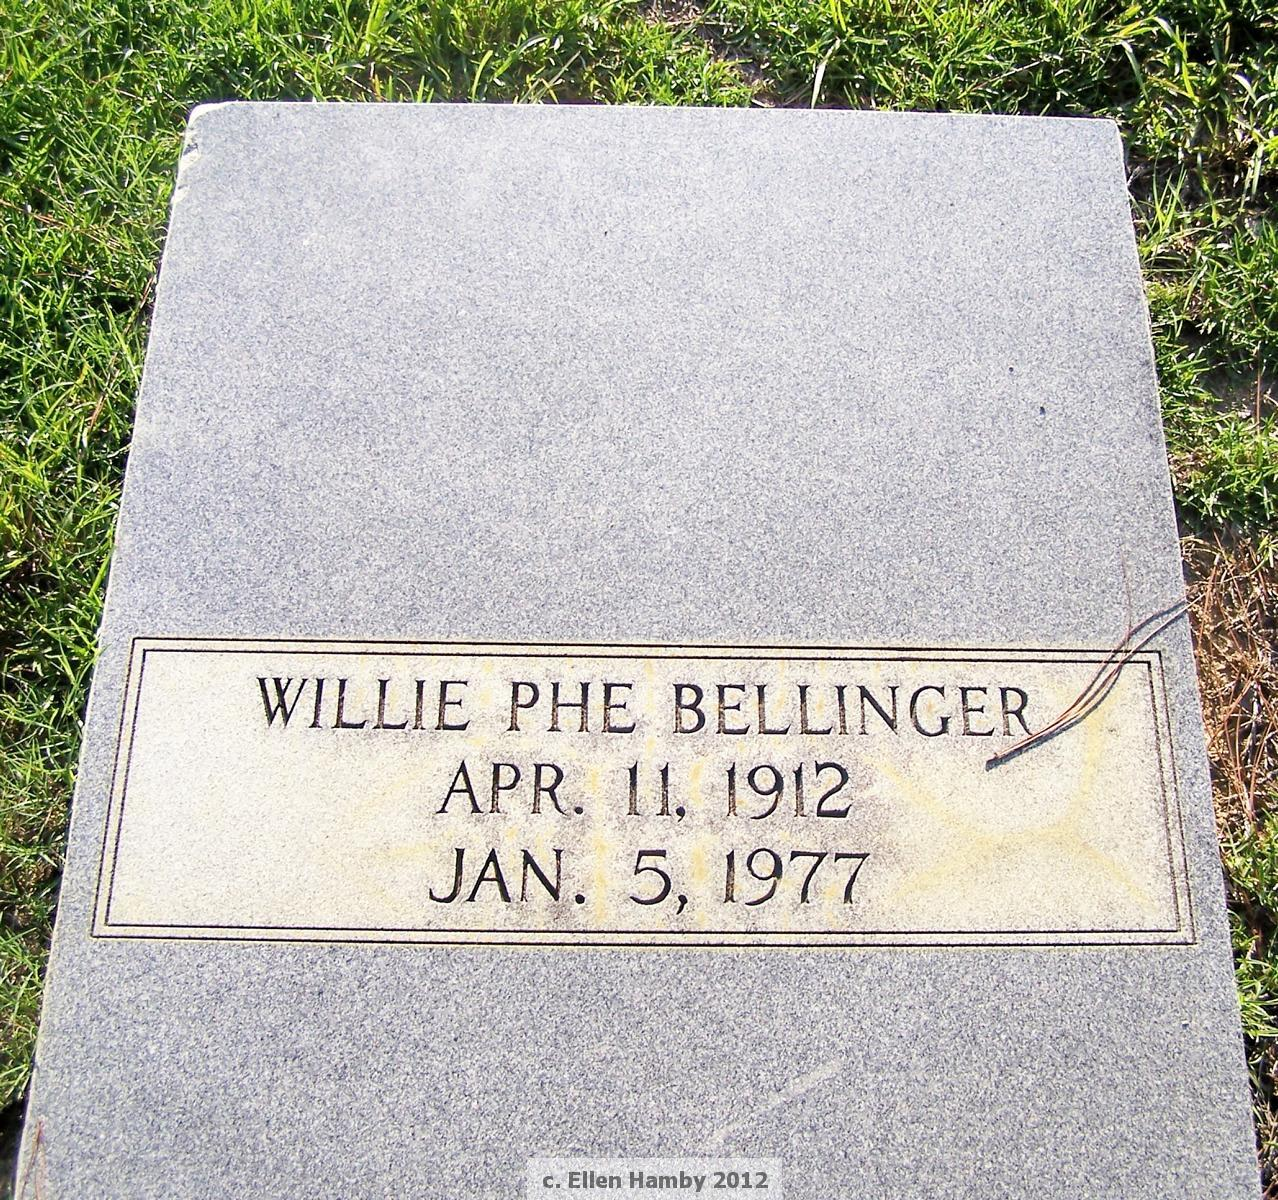 Willie Phe Bellinger